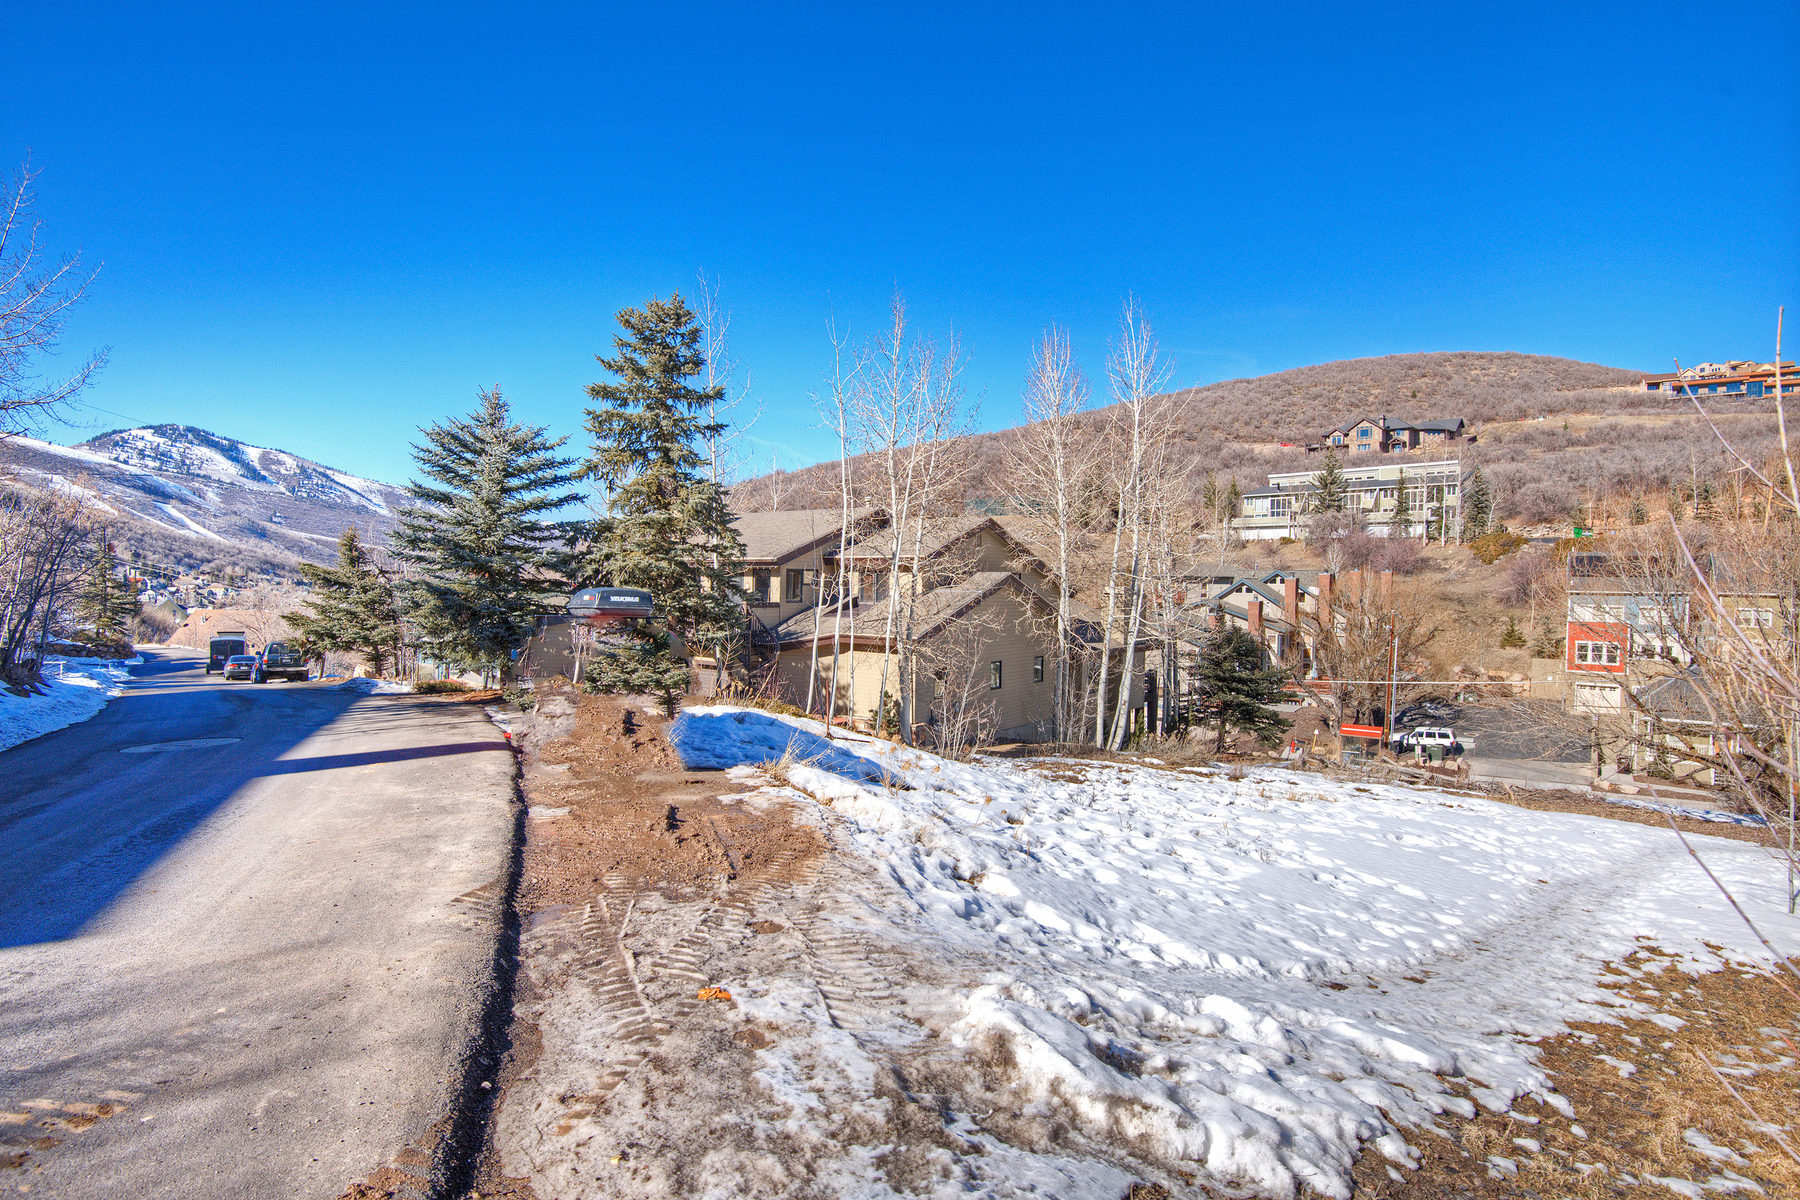 Земля для того Продажа на Fantastic Development Opportunity in Old Town Park City 553A & 533B Deer Valley Loop Rd Park City, Юта 84060 Соединенные Штаты